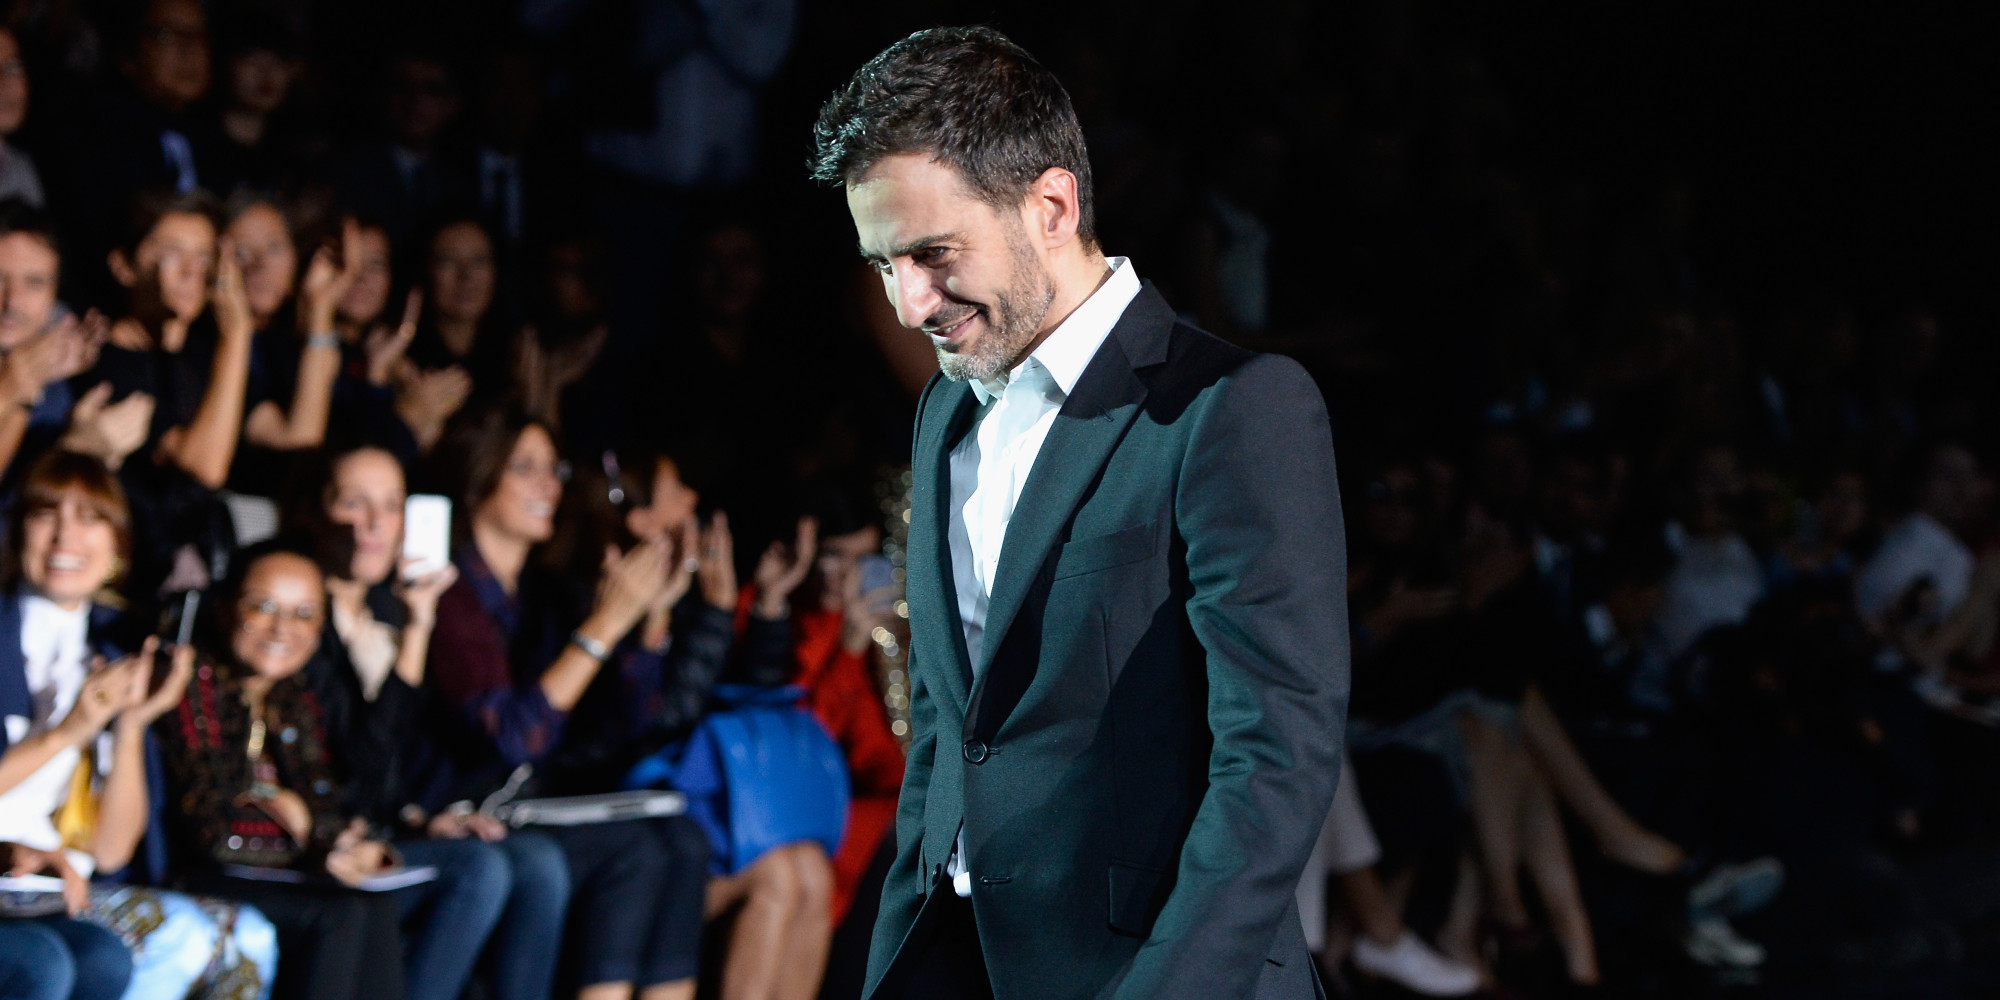 marc jacobs quits louis vuitton to concentrate on ipo